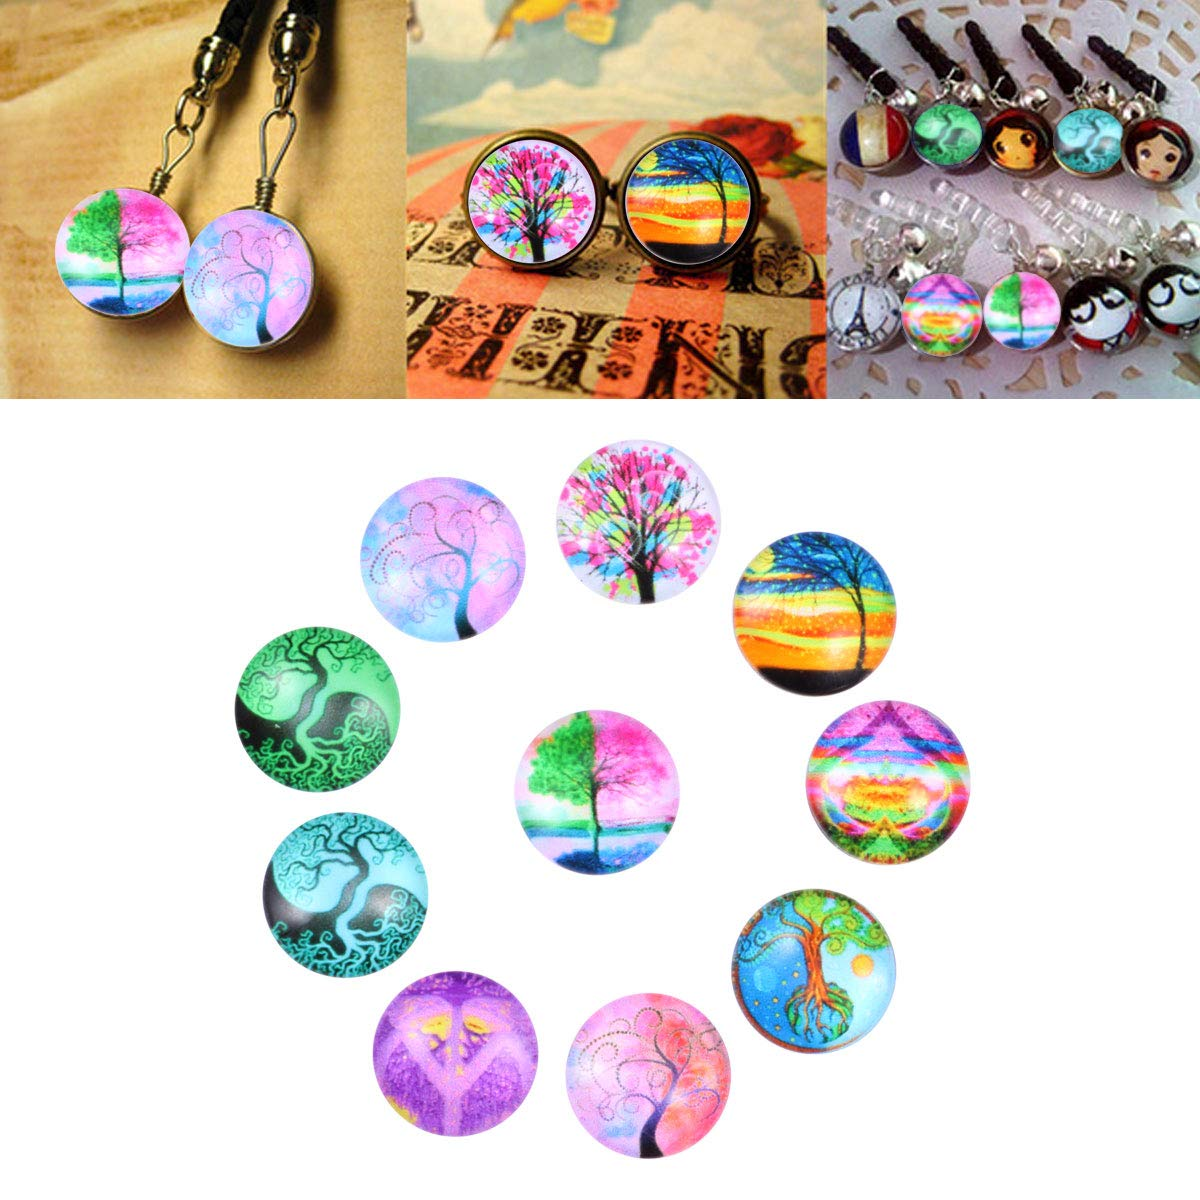 SUPVOX 10pcs Flatback Cabochons Tree of Life Glass Cabochons Embellishments Crystal Cabochons Snaps Buttons DIY Jewelry Accessories 12mm